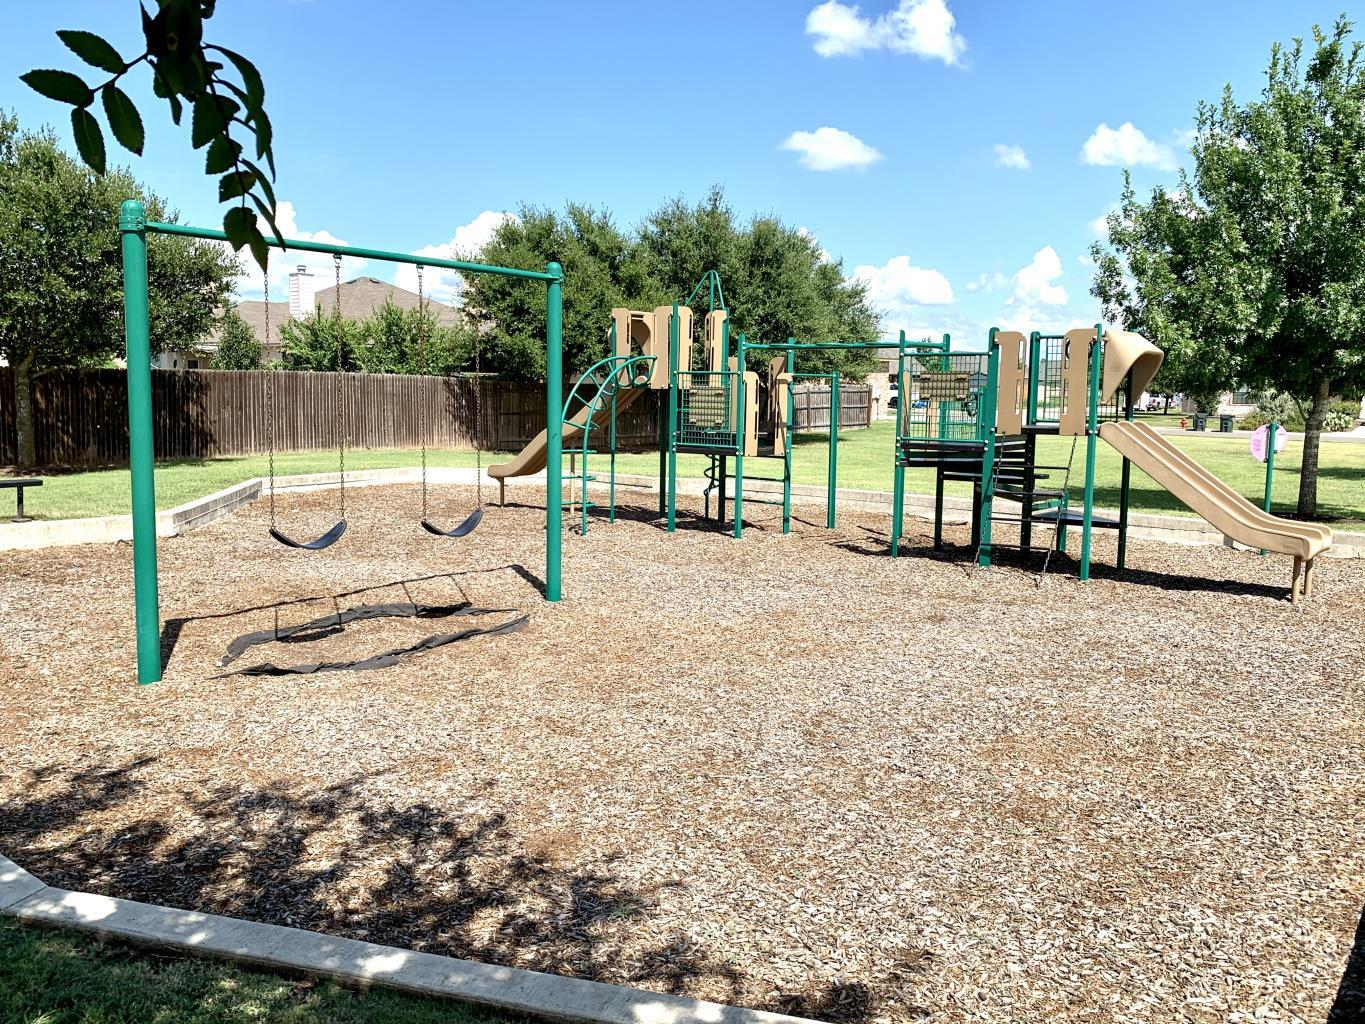 The playground in Woodlands Park, Kyle, Texas.